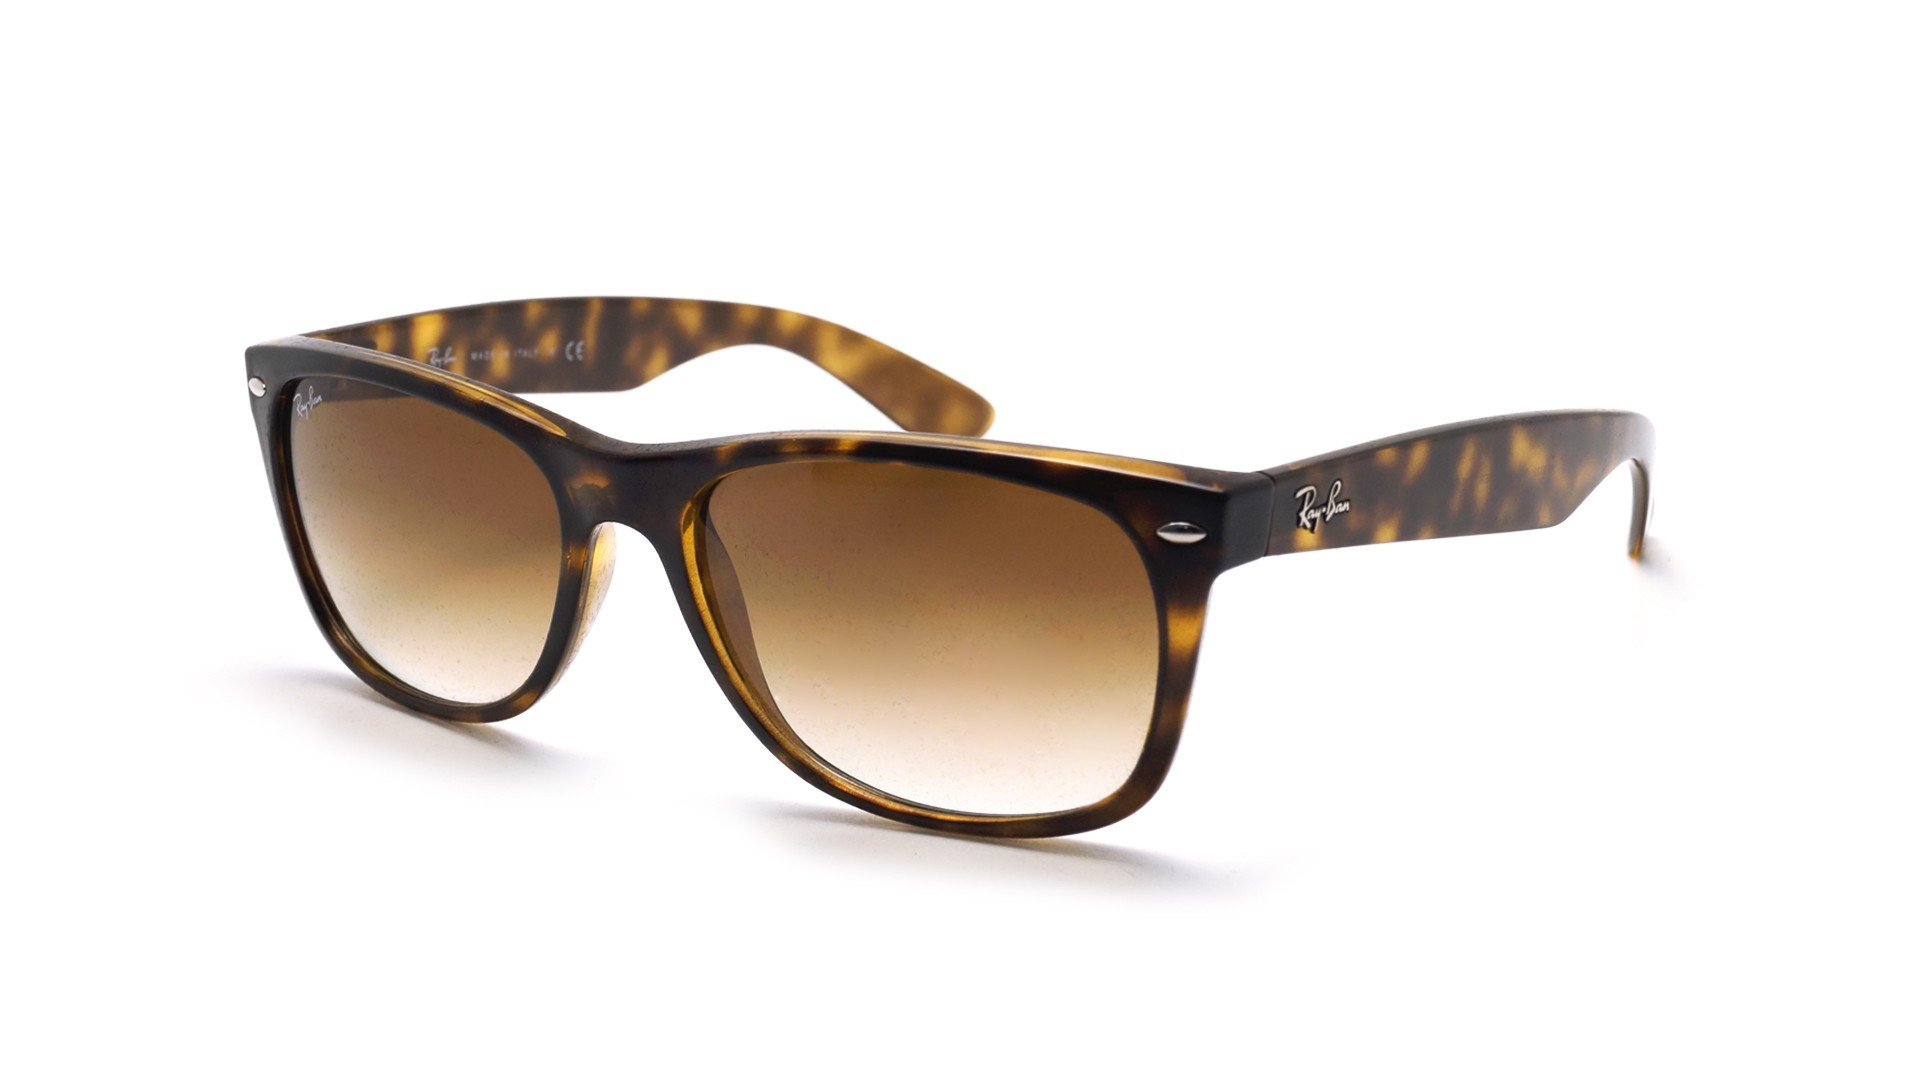 0808a2b4729fd Sunglasses Ray-Ban New Wayfarer Tortoise RB2132 710 51 55-18 Large Gradient